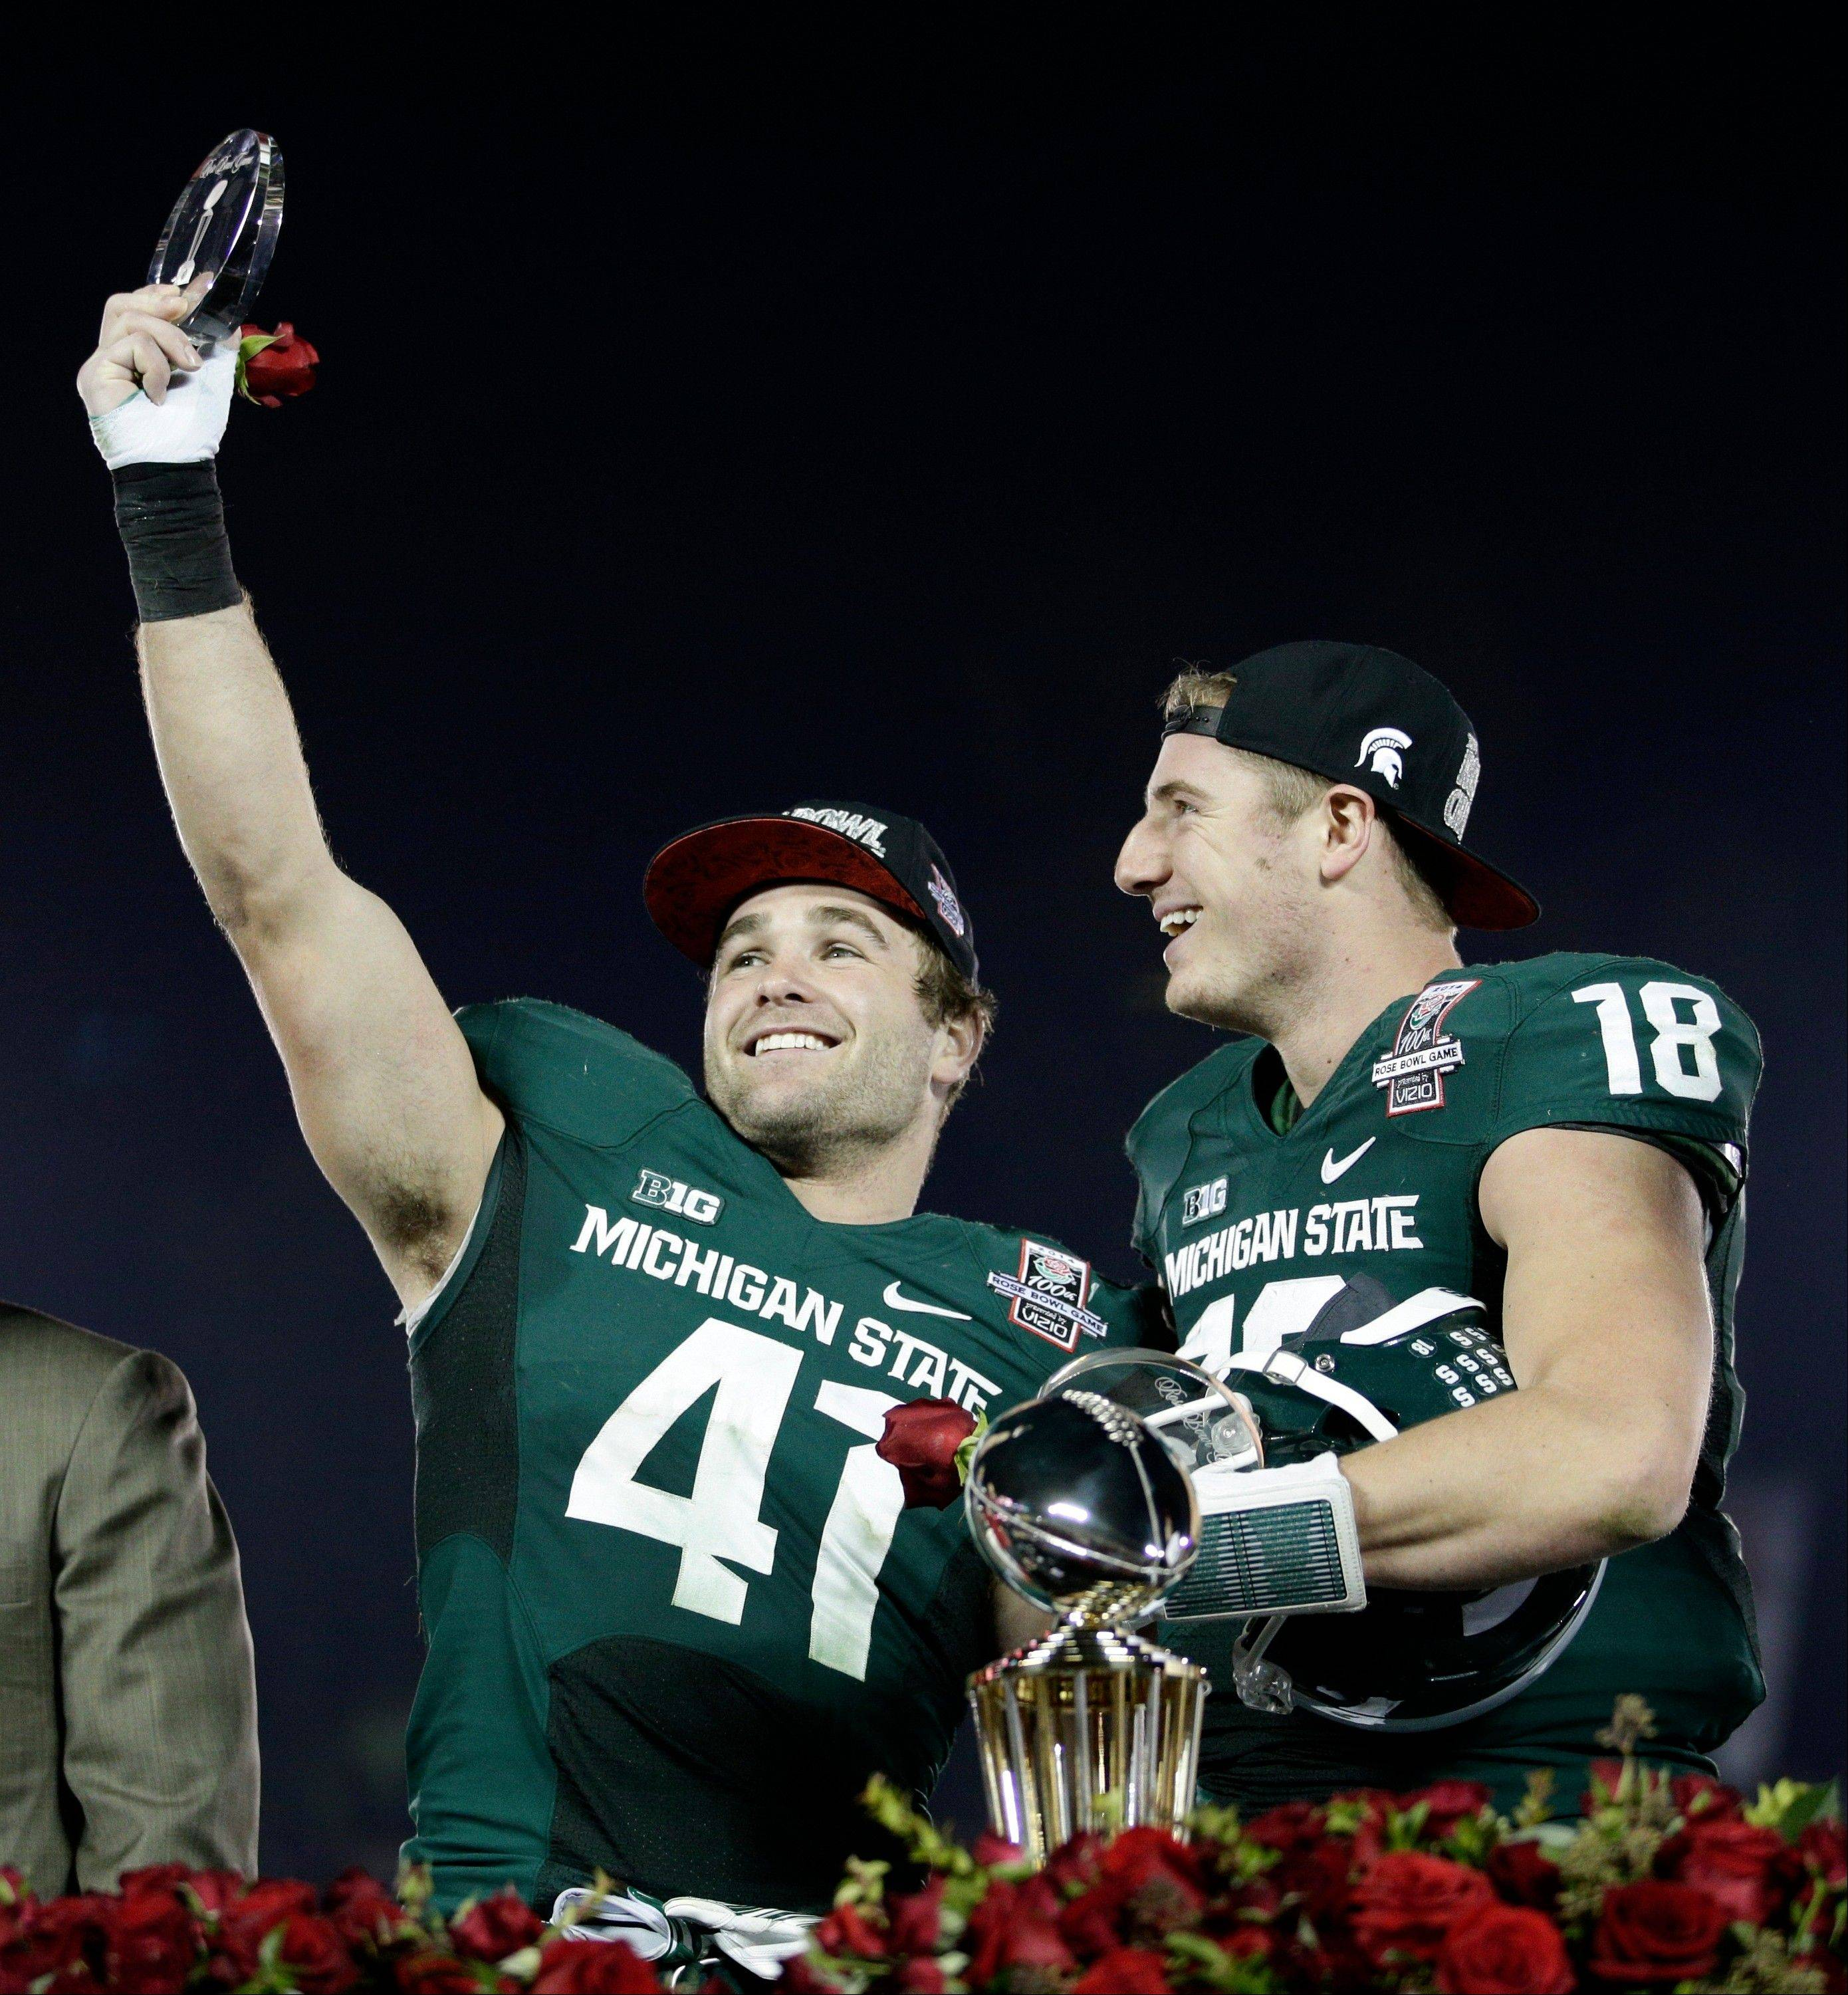 Linebacker Kyler Elsworth, left, celebrates with quarterback Connor Cook after Michigan State defeated Stanford 24-20 in the Rose Bowl on Wednesday night. Elsworth is a senior, but Cook will be back next season as a junior.